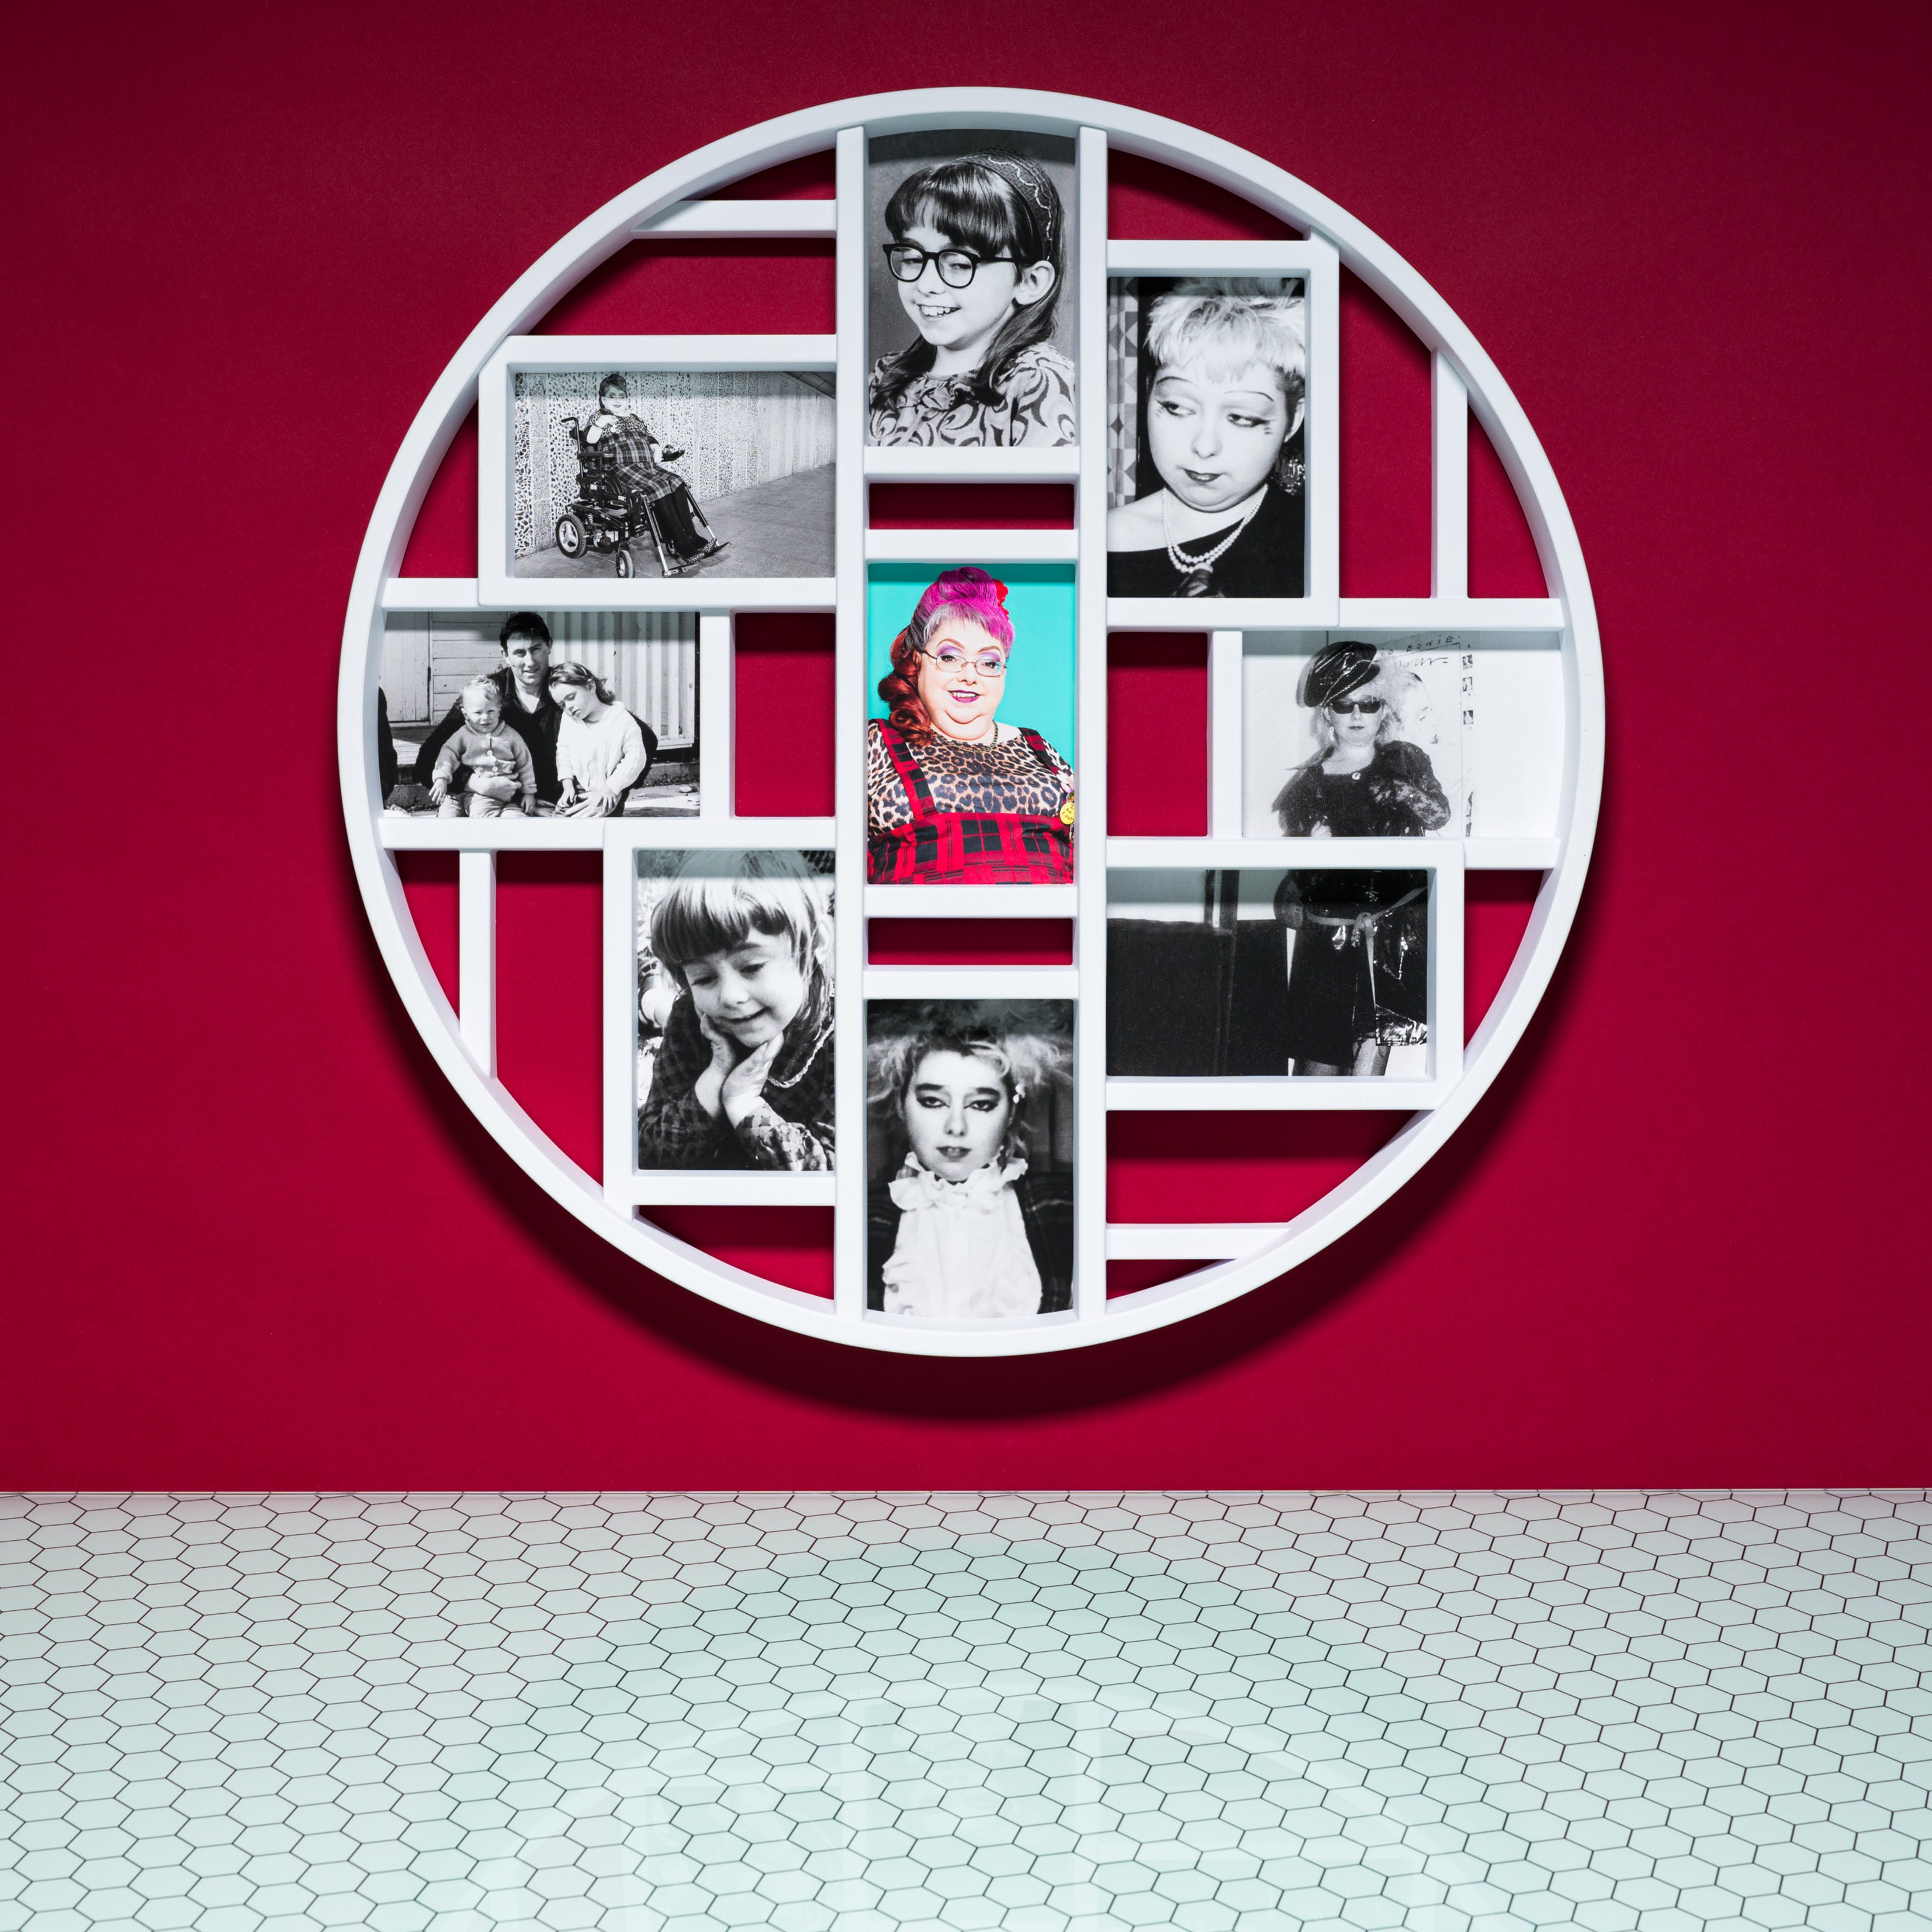 Photograph of a multiframe photo frame containing nine photographs, one in colour and eight in black and white. The frame is hung on a crimson wall above a glass patterned tabletop.